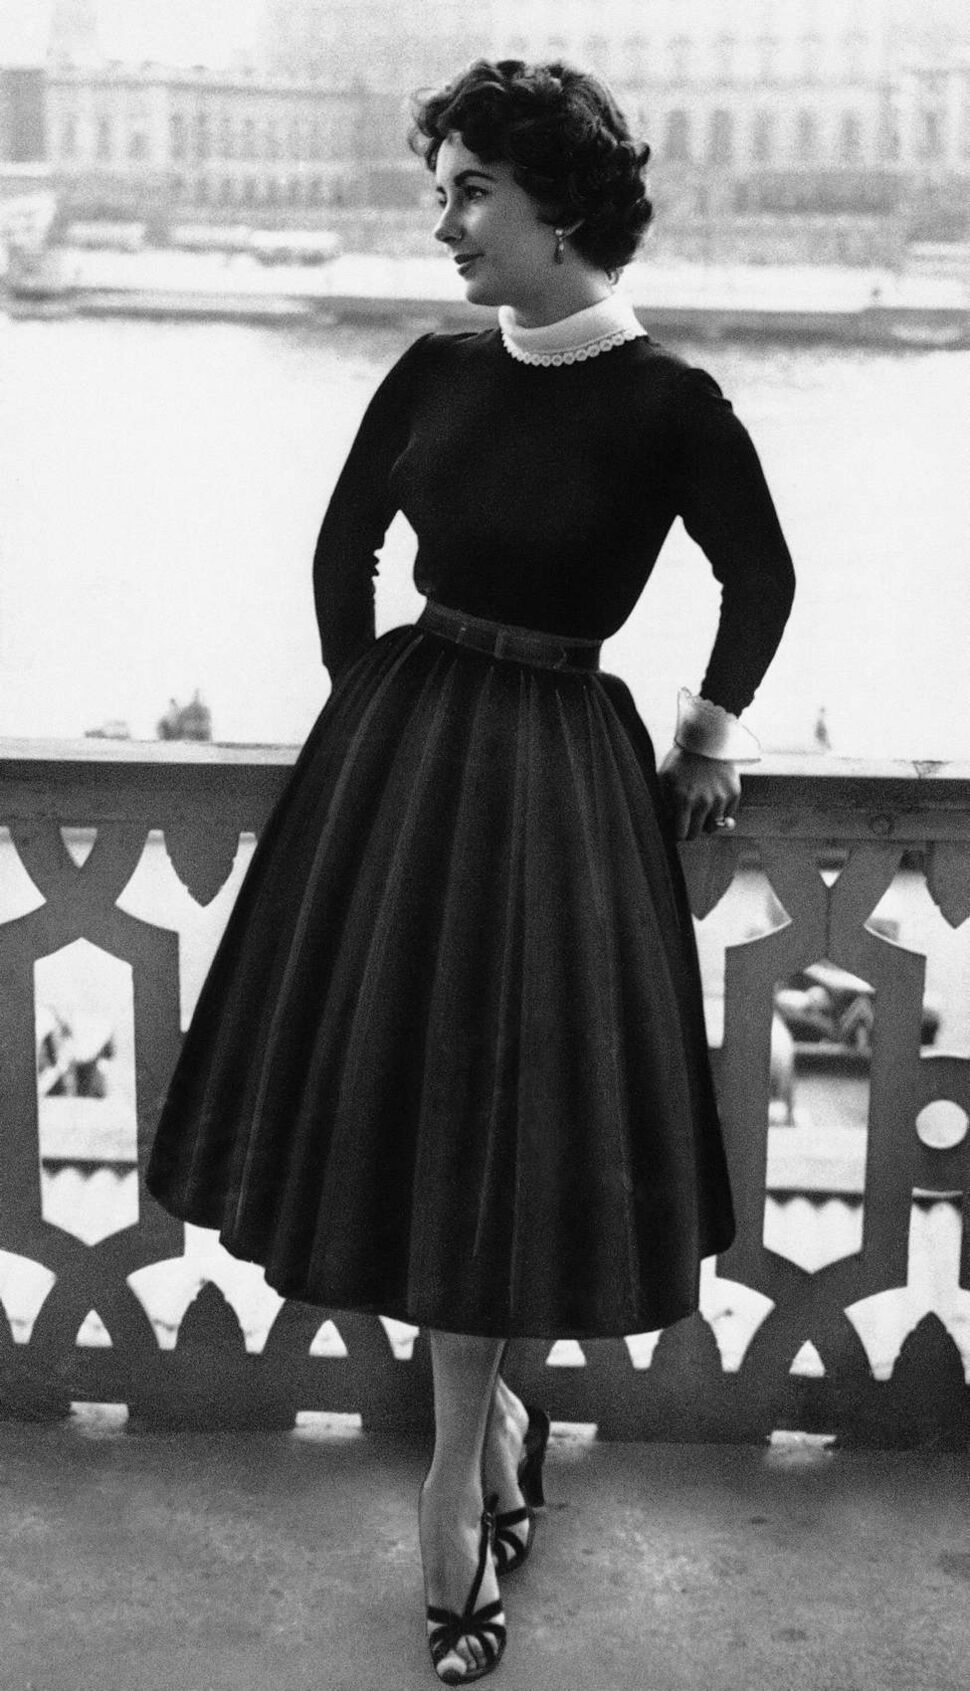 In this Sept. 25, 1953 file photo, actress Elizabeth Taylor stands on the balcony of the Grand Hotel in Stockholm, Sweden. (AP Photo/File)